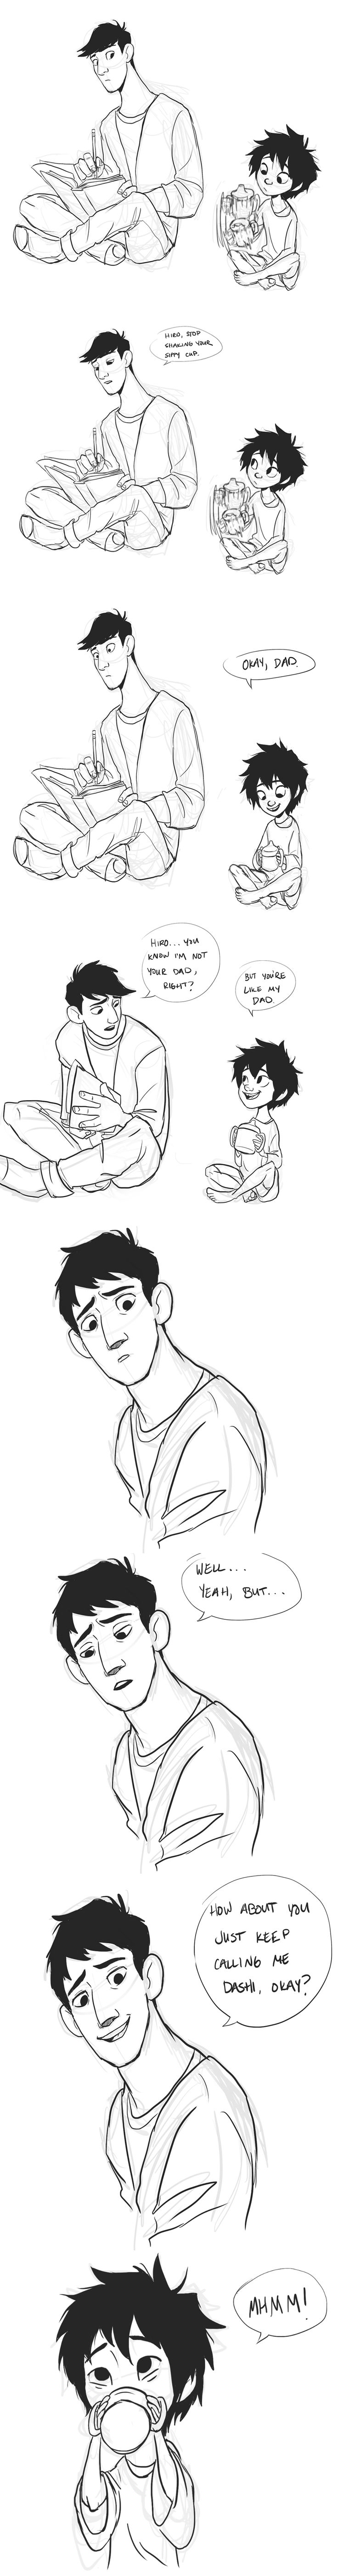 baby!hiro and papa!tadashi. by uponagraydawn on tumblr.<<<hiros so  inncocent and happy